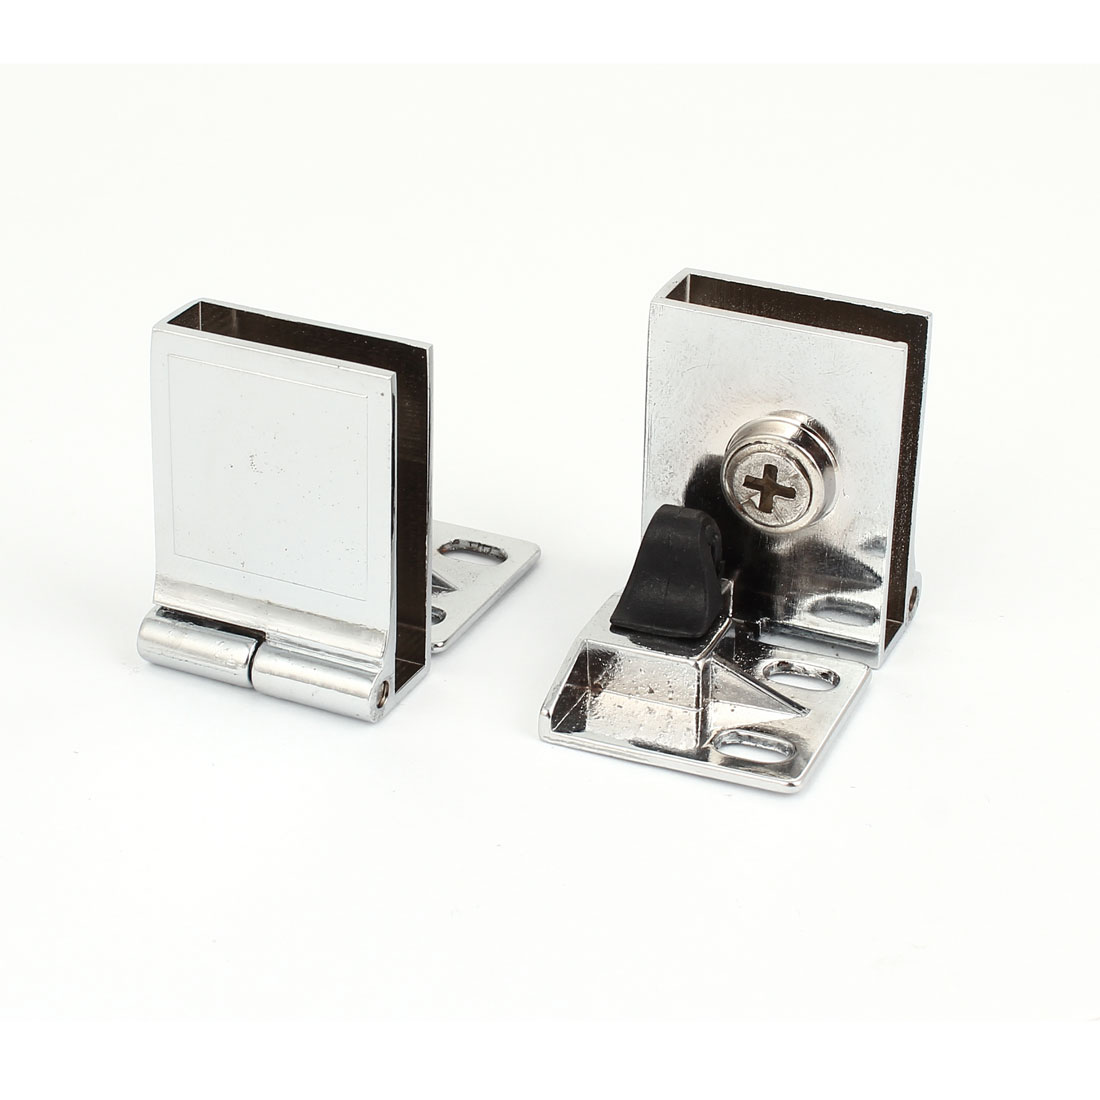 2 Pcs Stainless steel Shelf Clamp Support Brackets for 7mm Thickness Glass